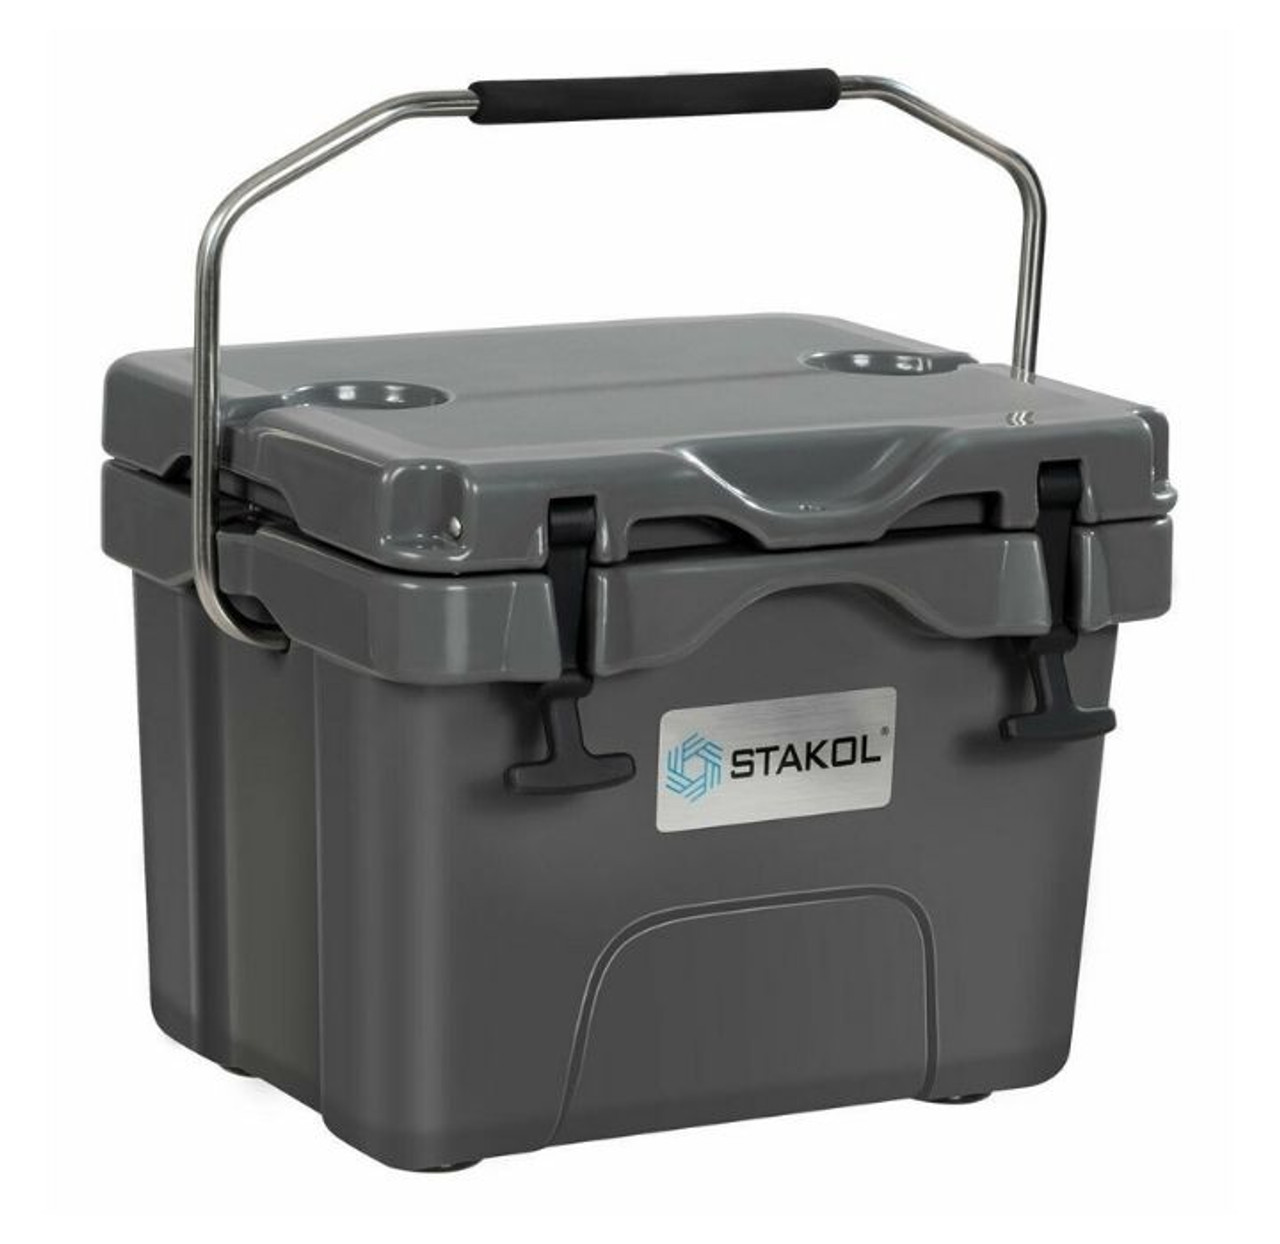 16-Quart Rotomolded Cooler with 5-Day Ice Retention! .97 (REG 9.99) + Free Shipping at Until Gone!